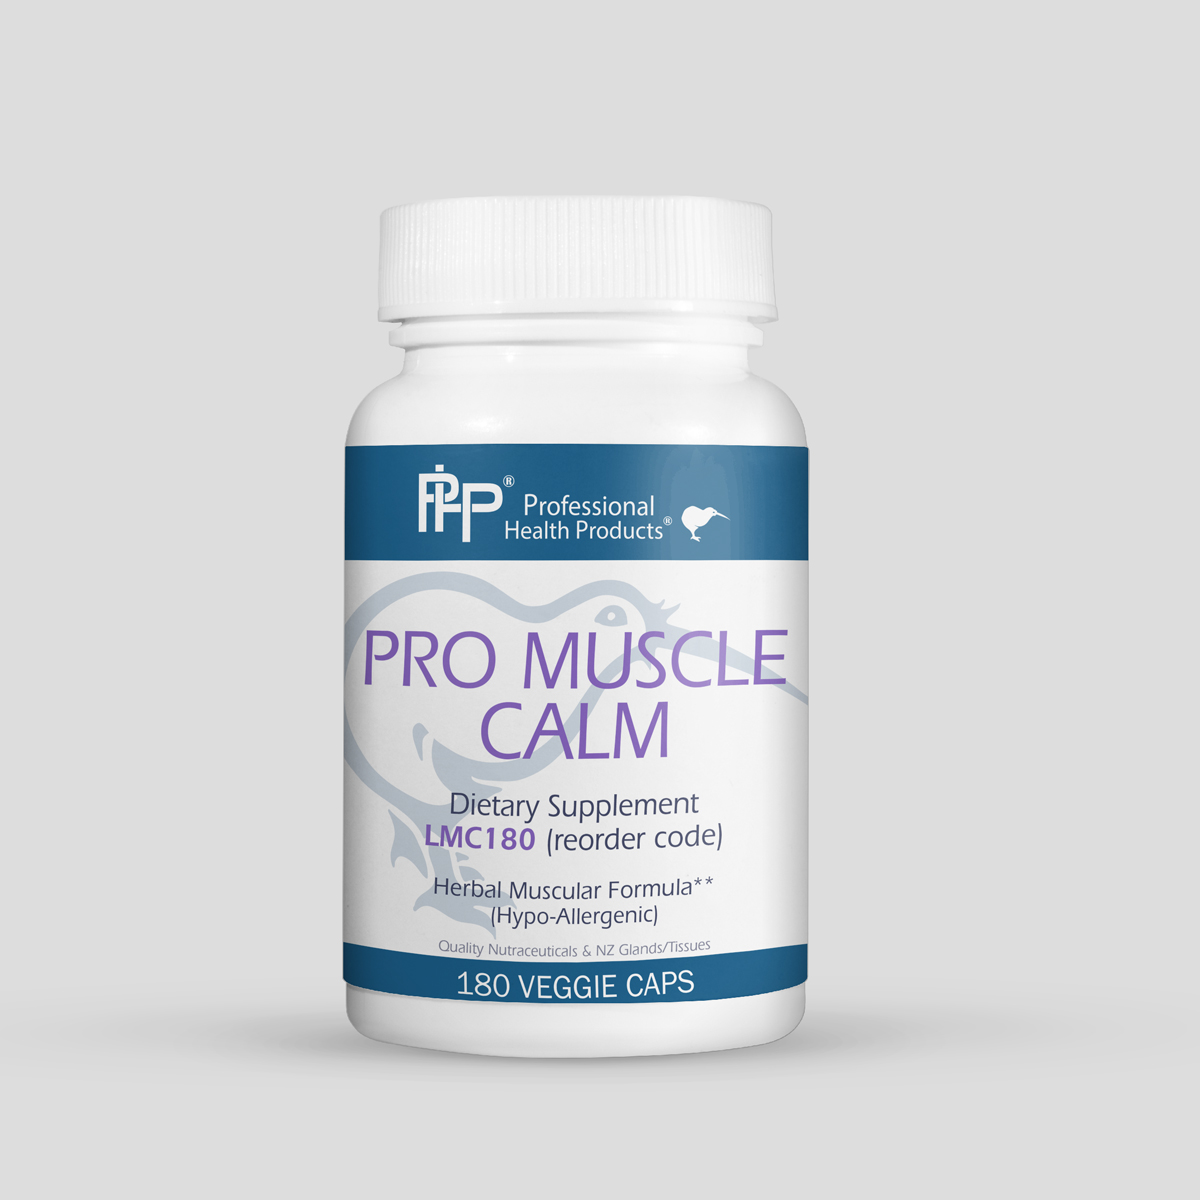 Pro Muscle Calm